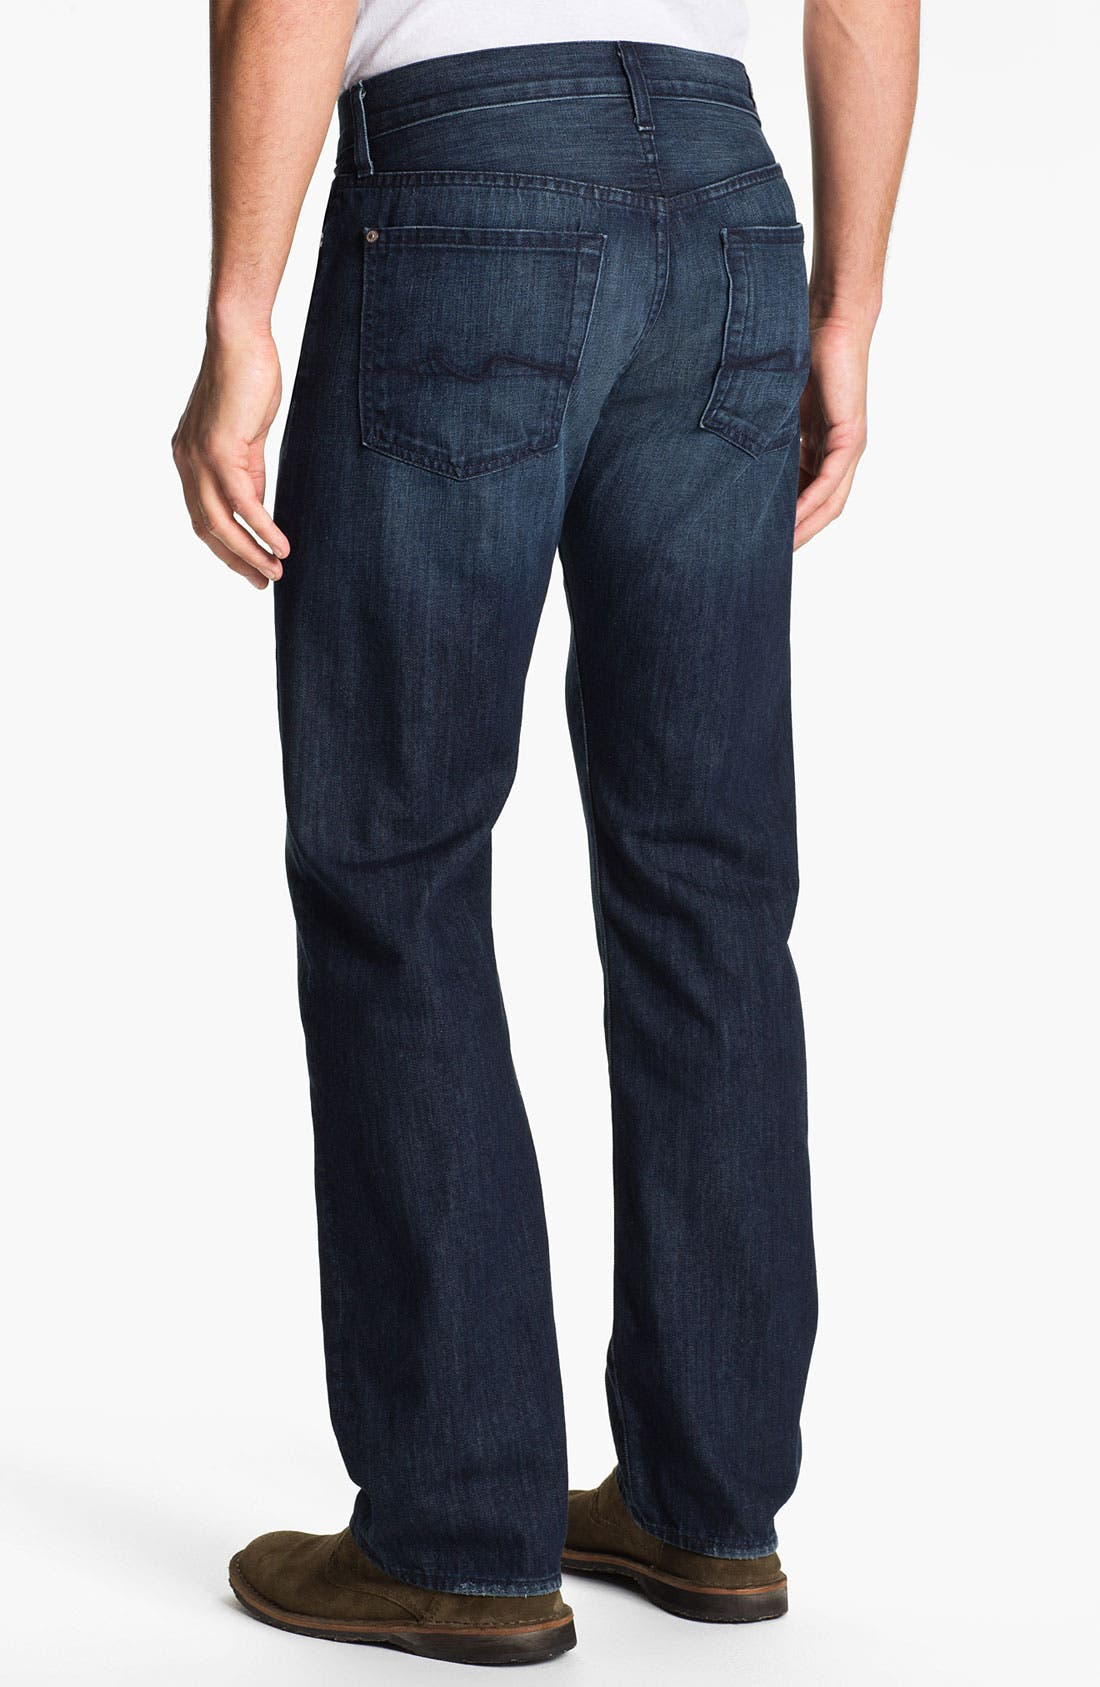 Alternate Image 1 Selected - 7 For All Mankind® 'Standard' Straight Leg Jeans (Contra Costa)